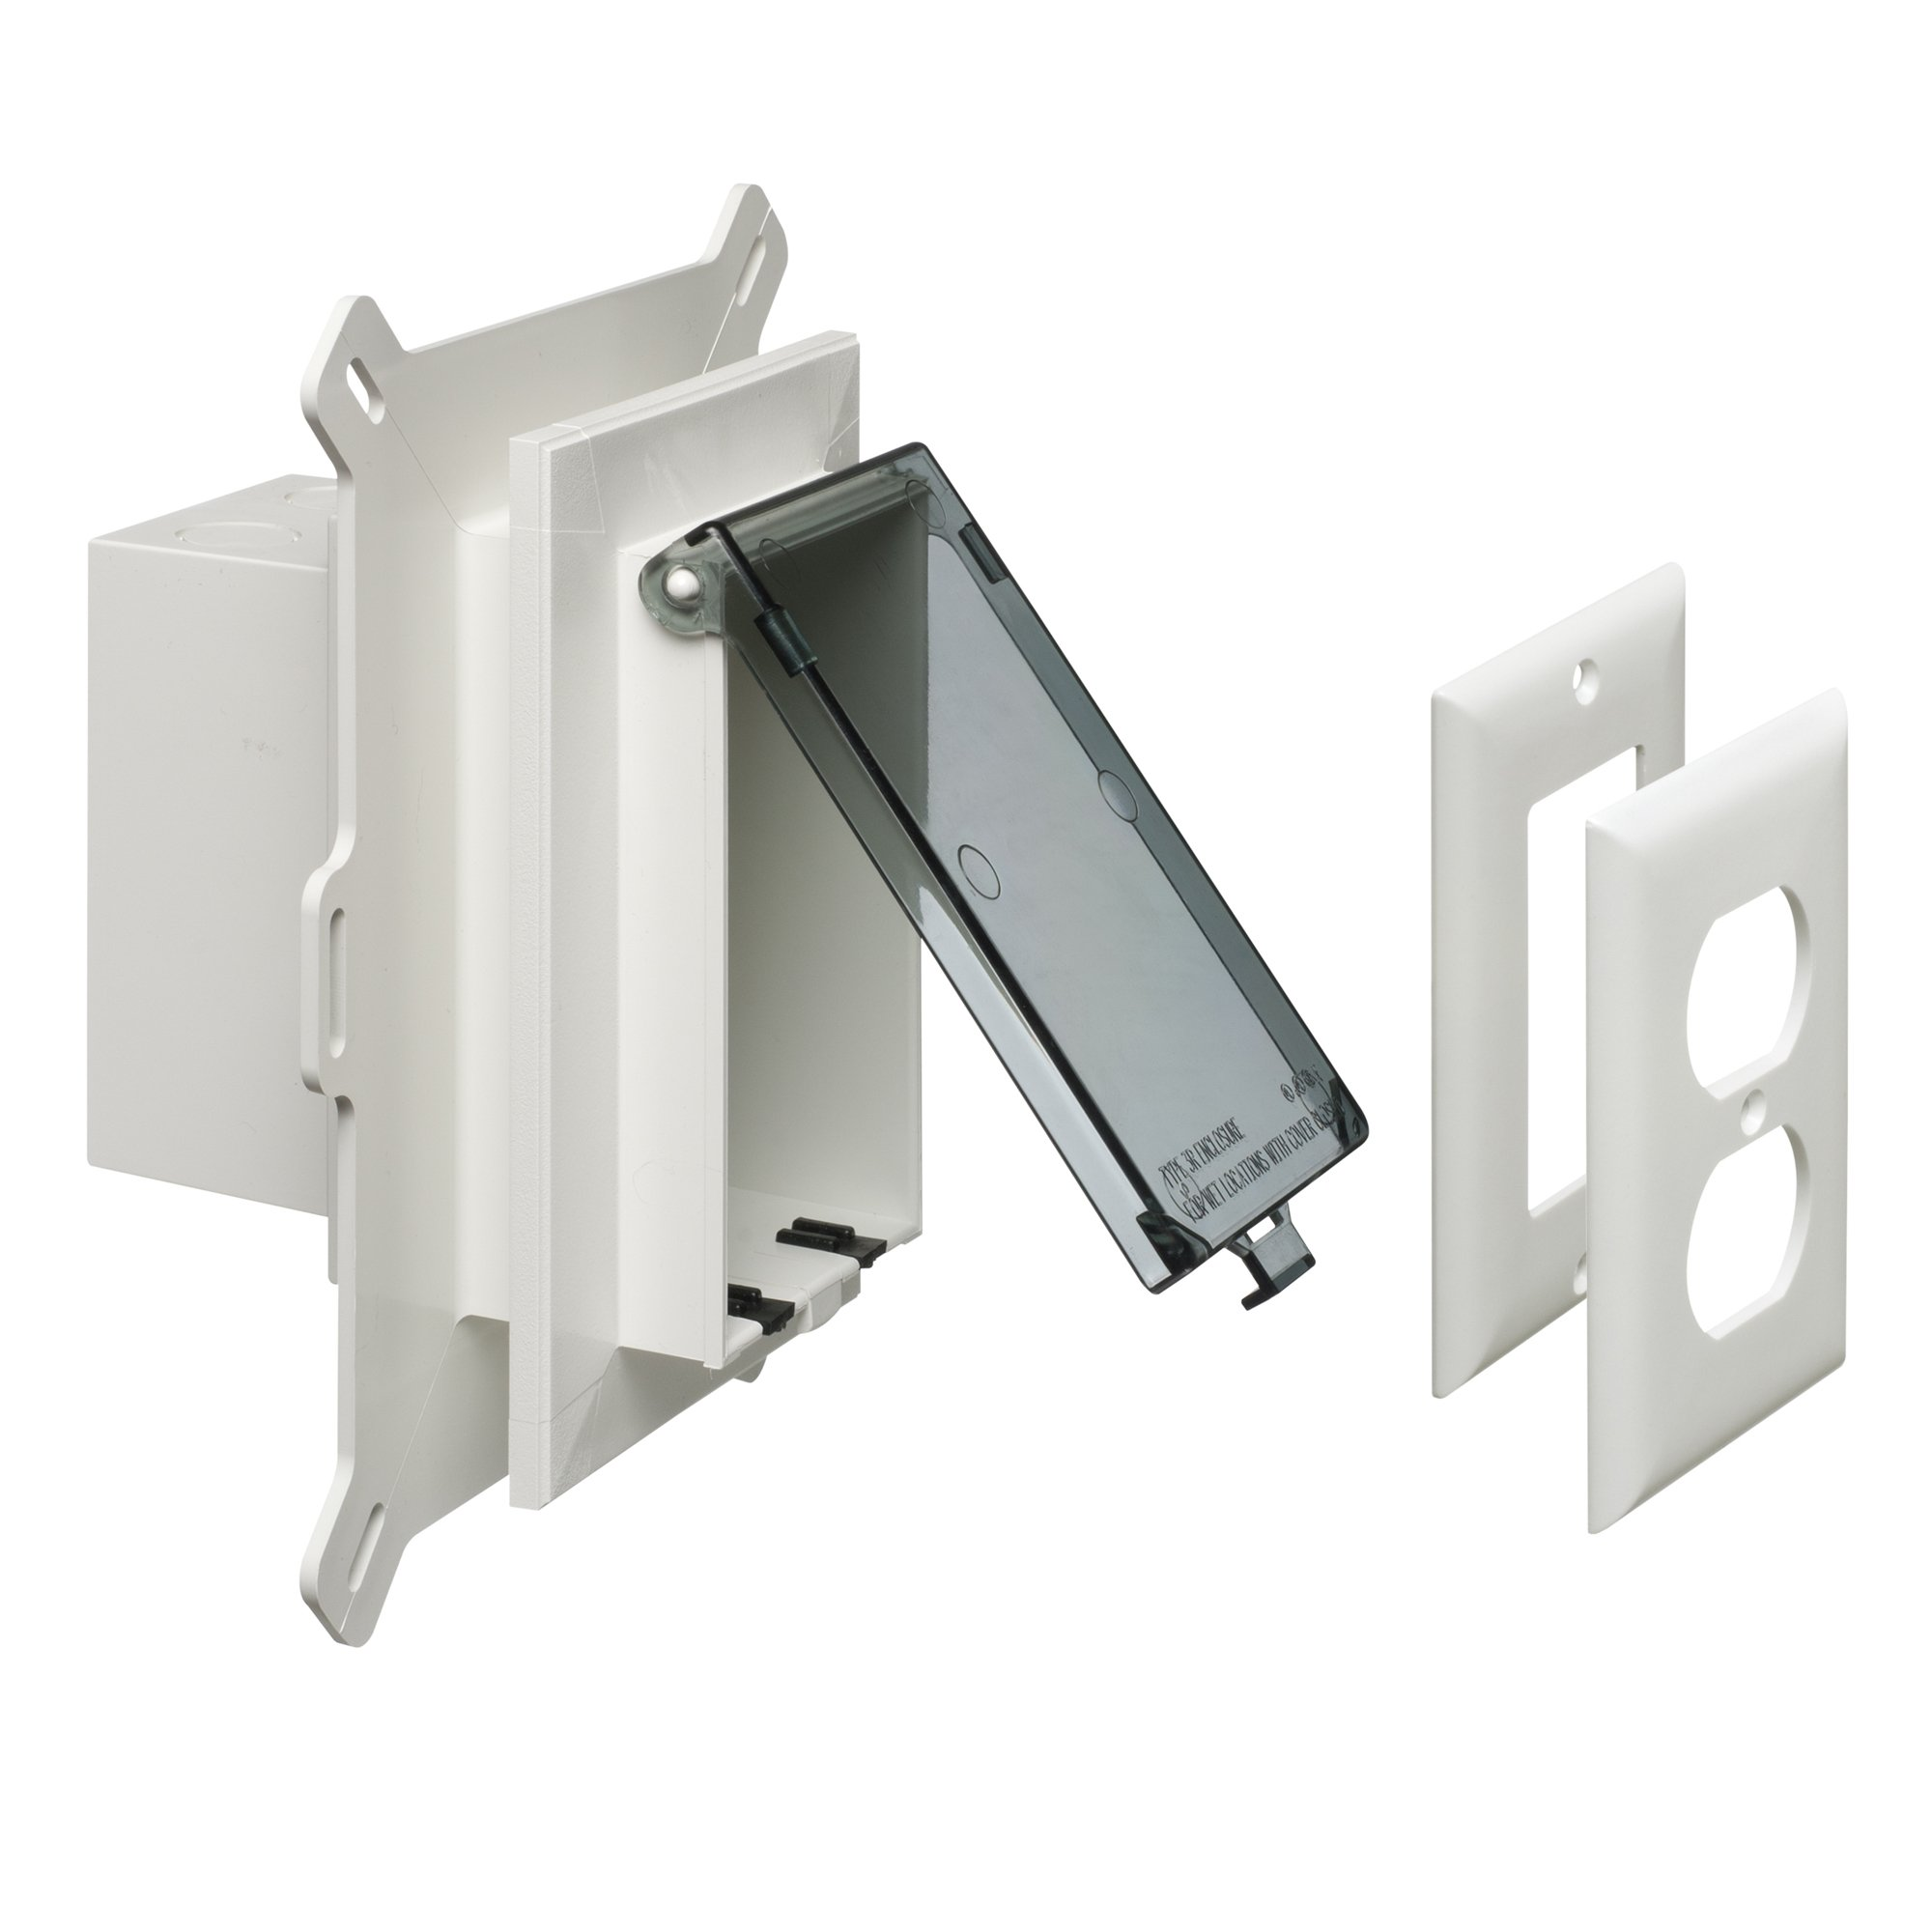 Arlington DBVS1C-1 Low Profile IN BOX Recessed Outlet Box Wall Plate Kit for New Vinyl Siding Construction, Vertical, 1-Gang, Clear by Arlington Industries